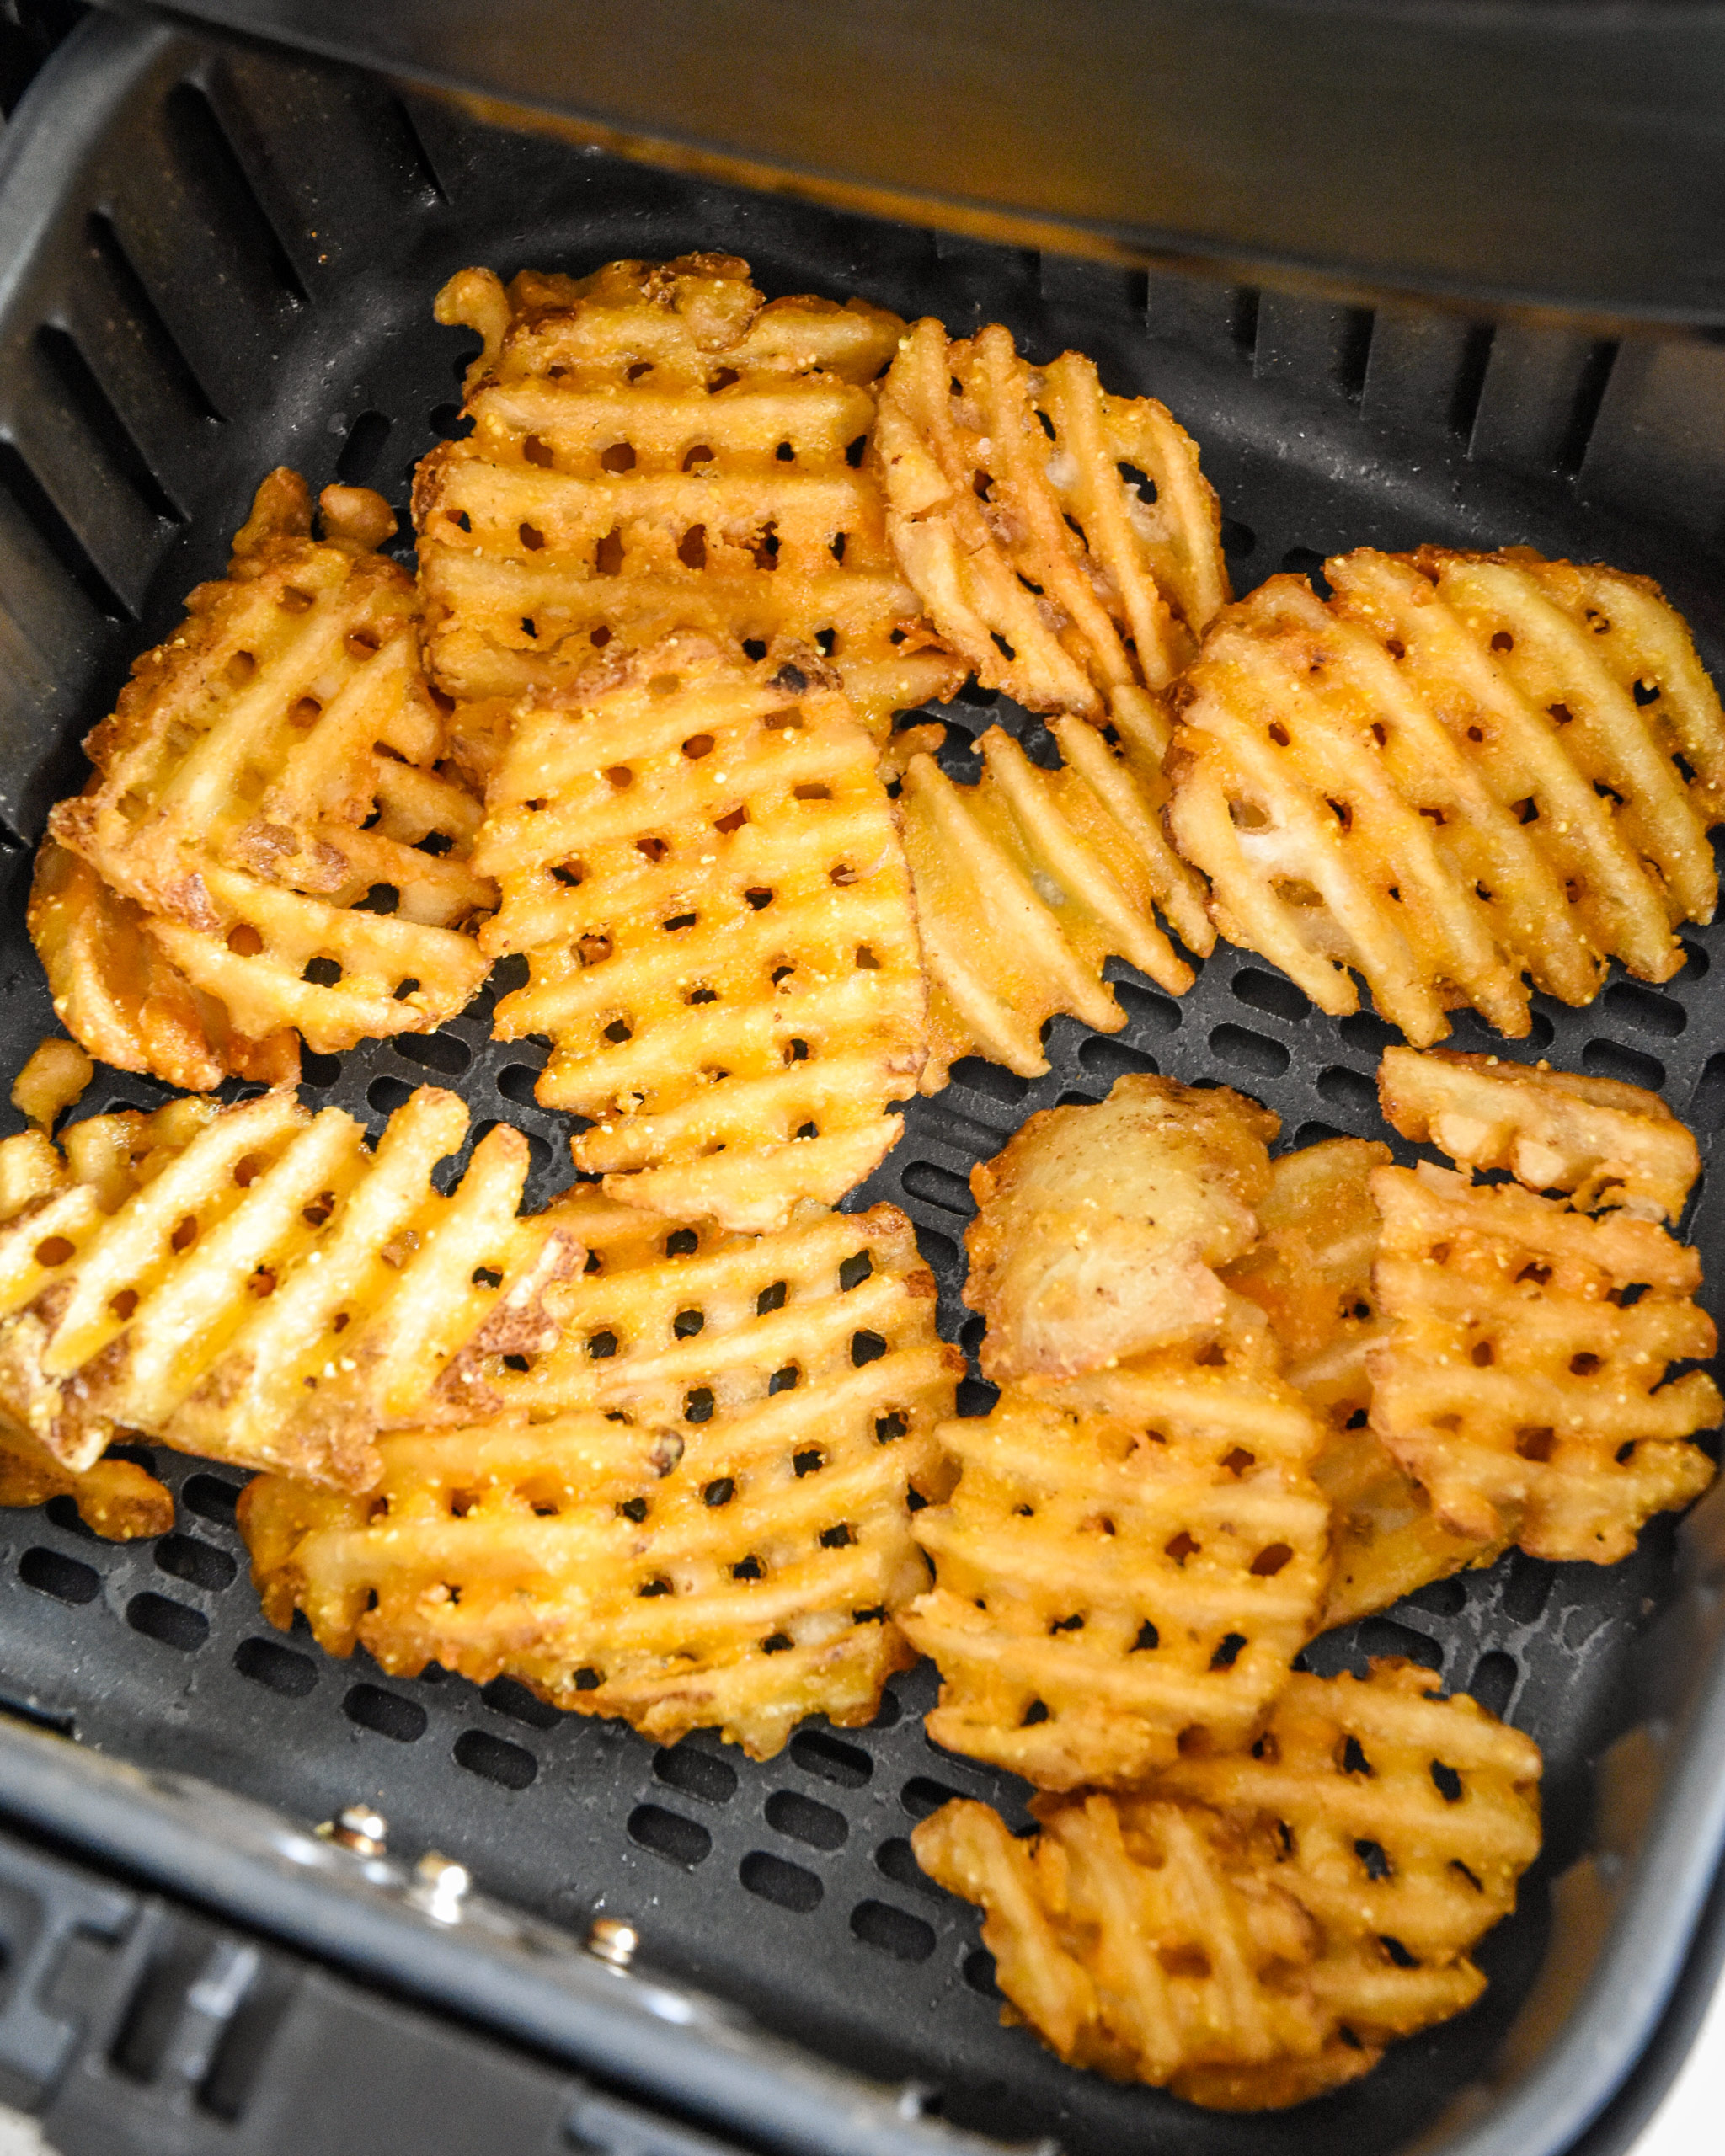 waffle fries in an air fryer basket